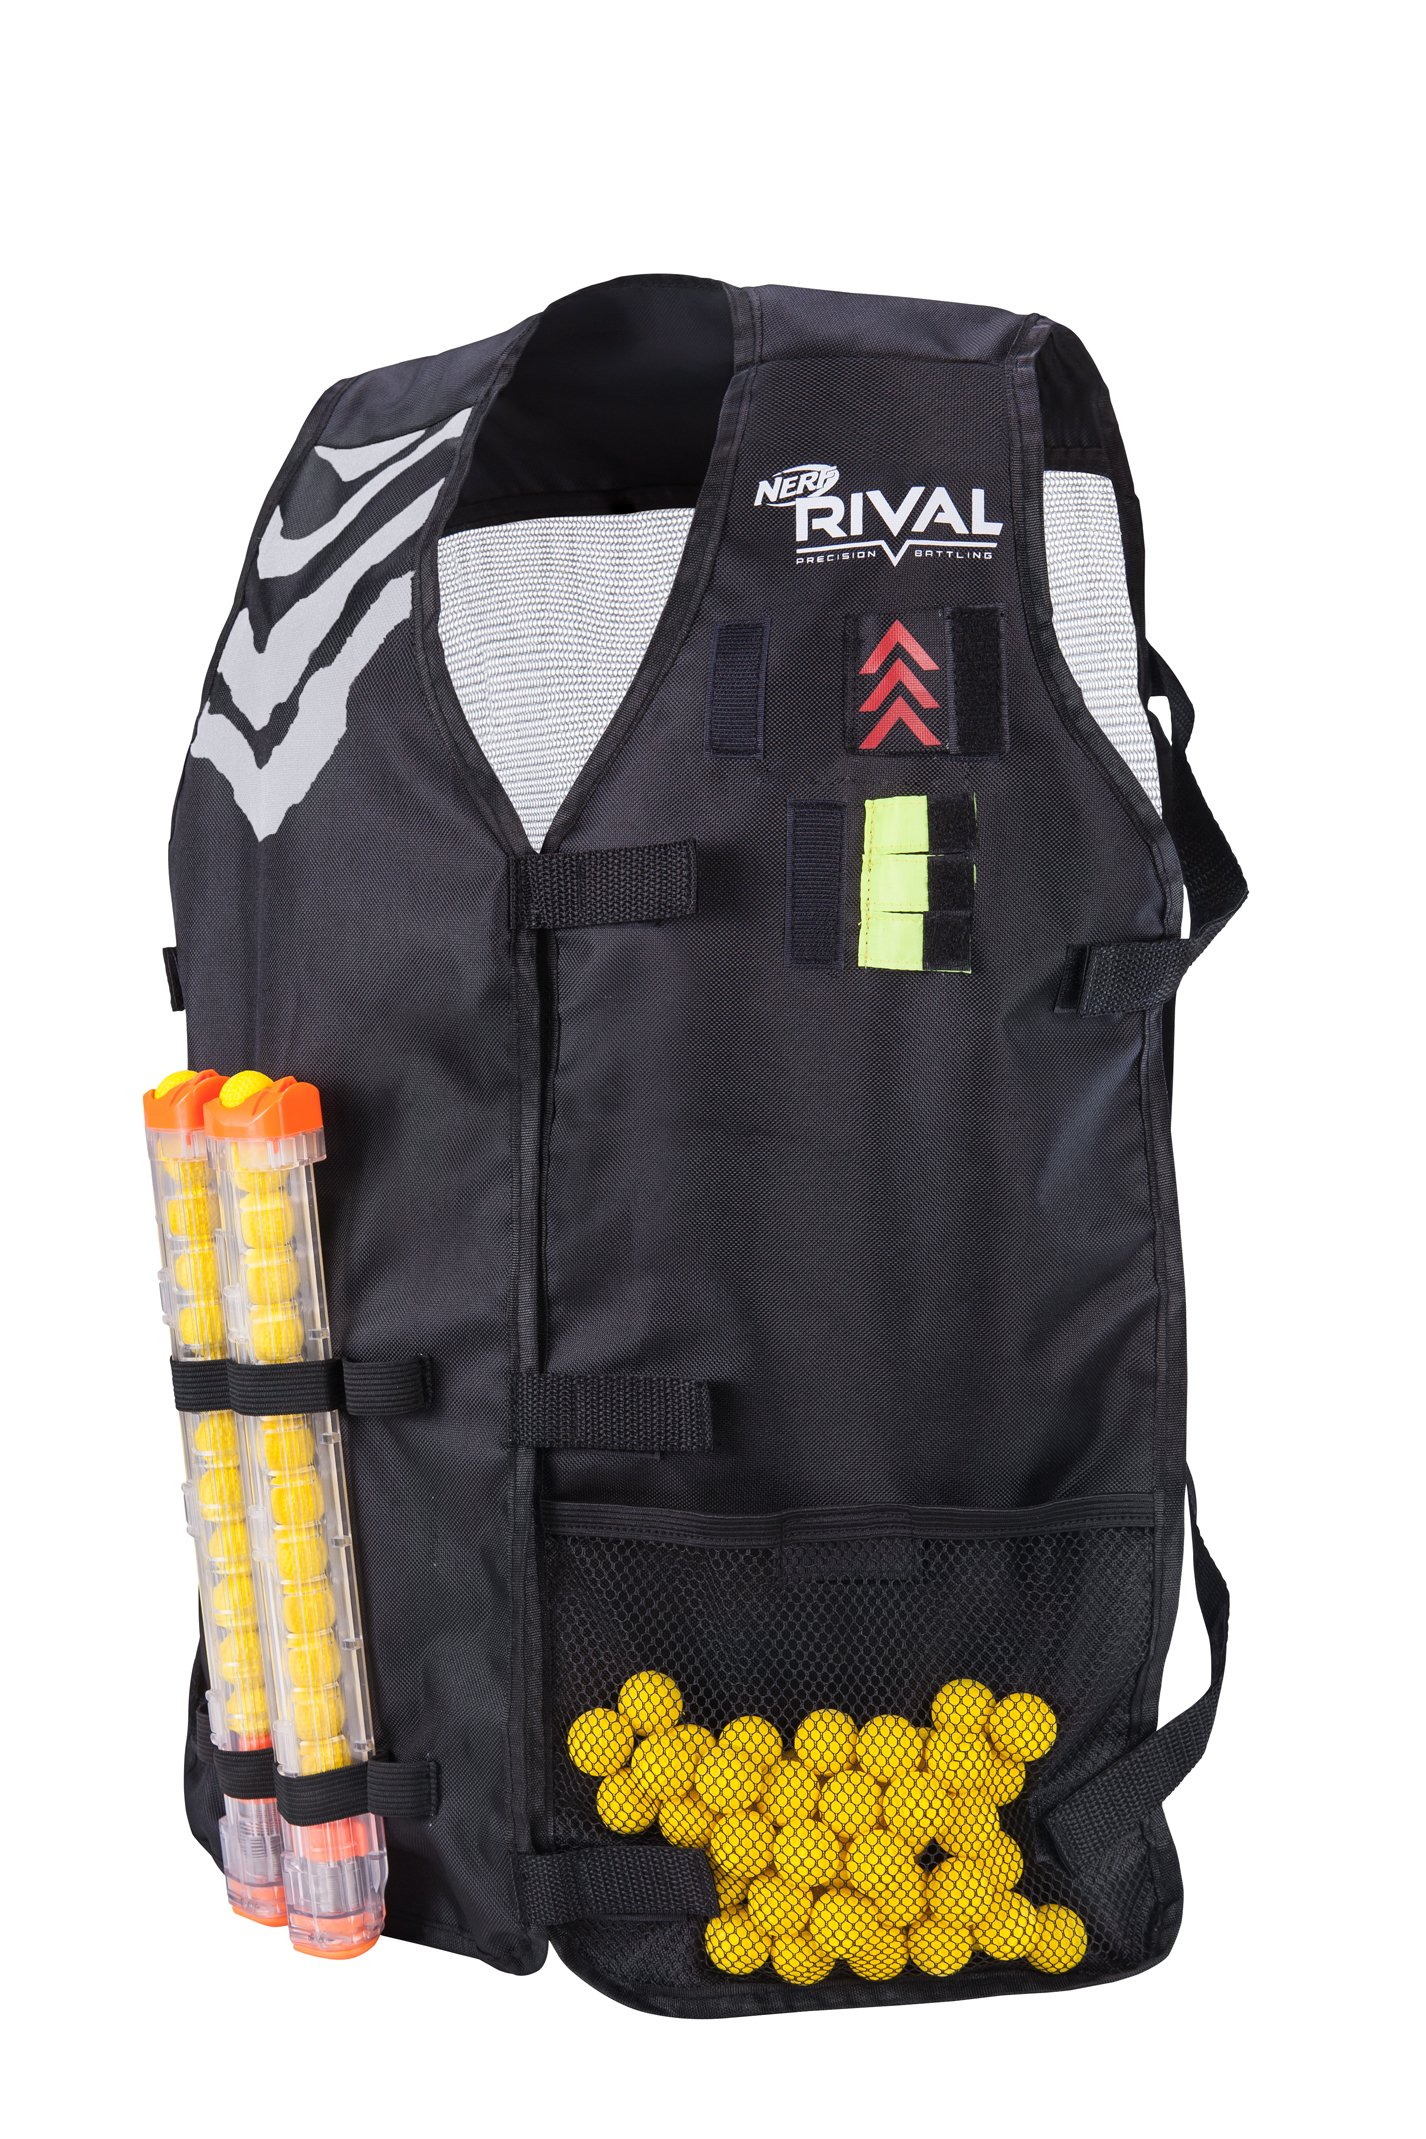 Nerf Rival Tactical Vest (Red and Blue flag)